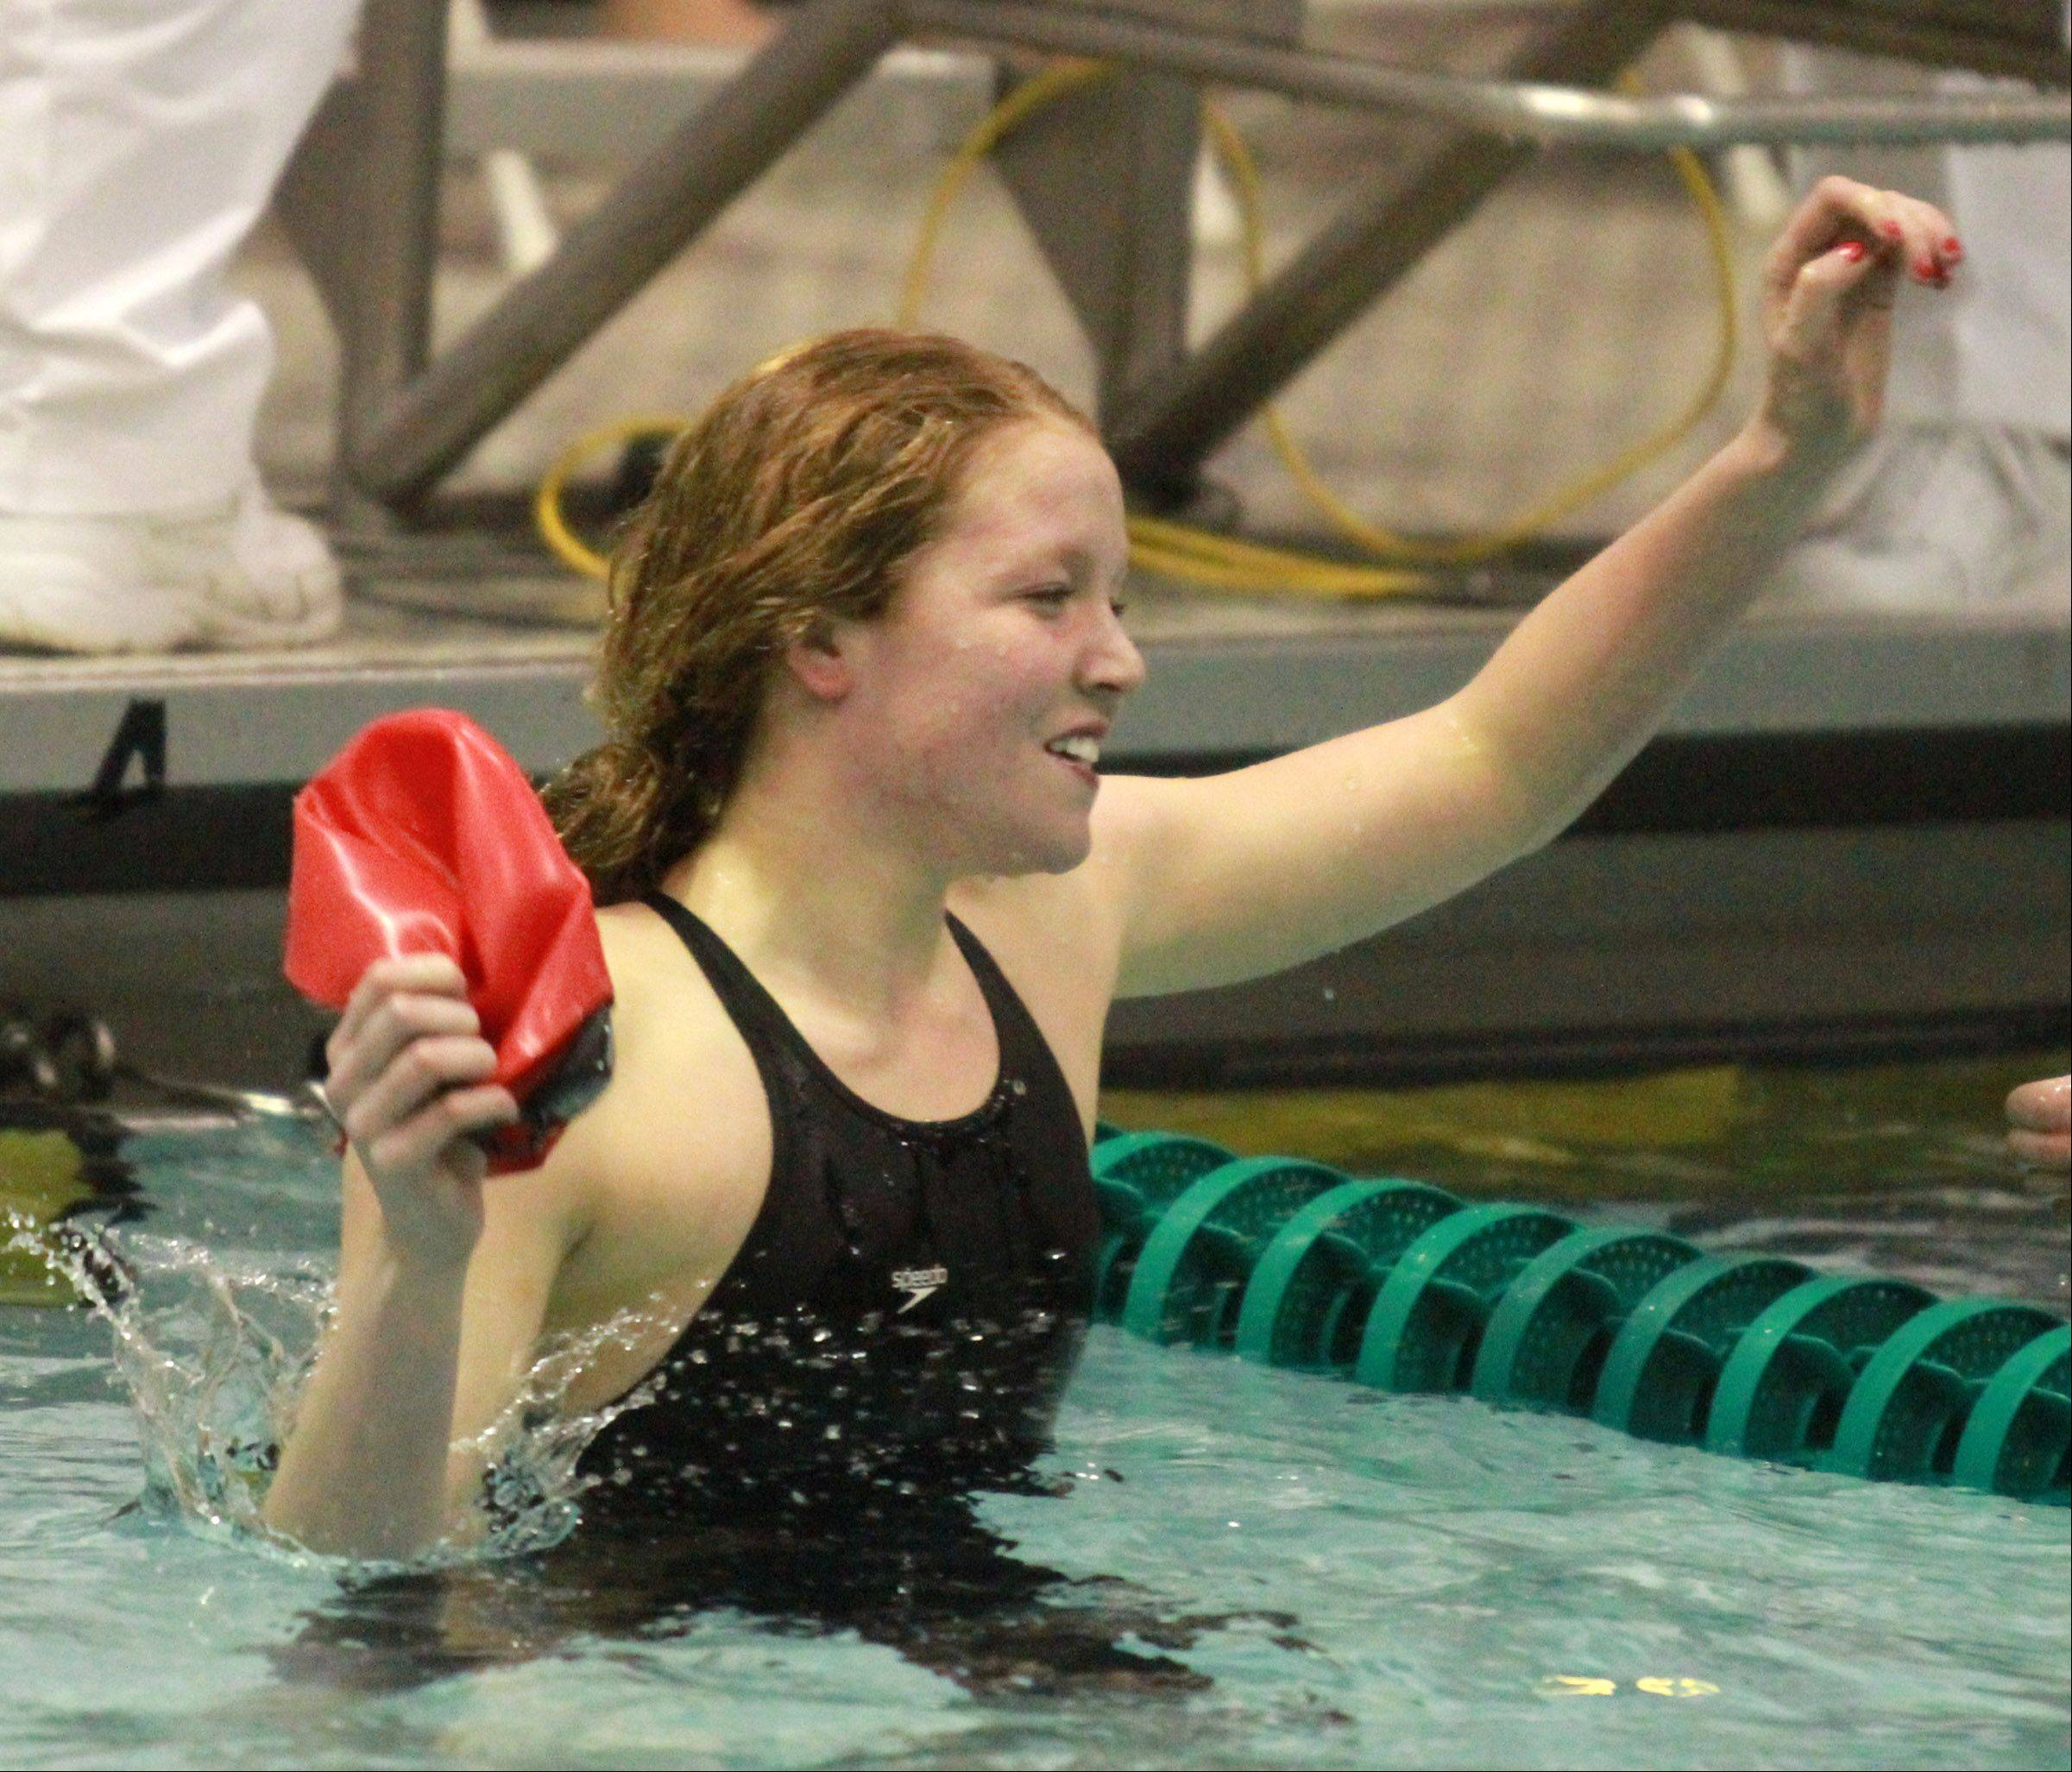 Mundelein's Erin Falconer placed second in the 200-yard freestyle at the girls state swimming finals on Saturday at New Trier.